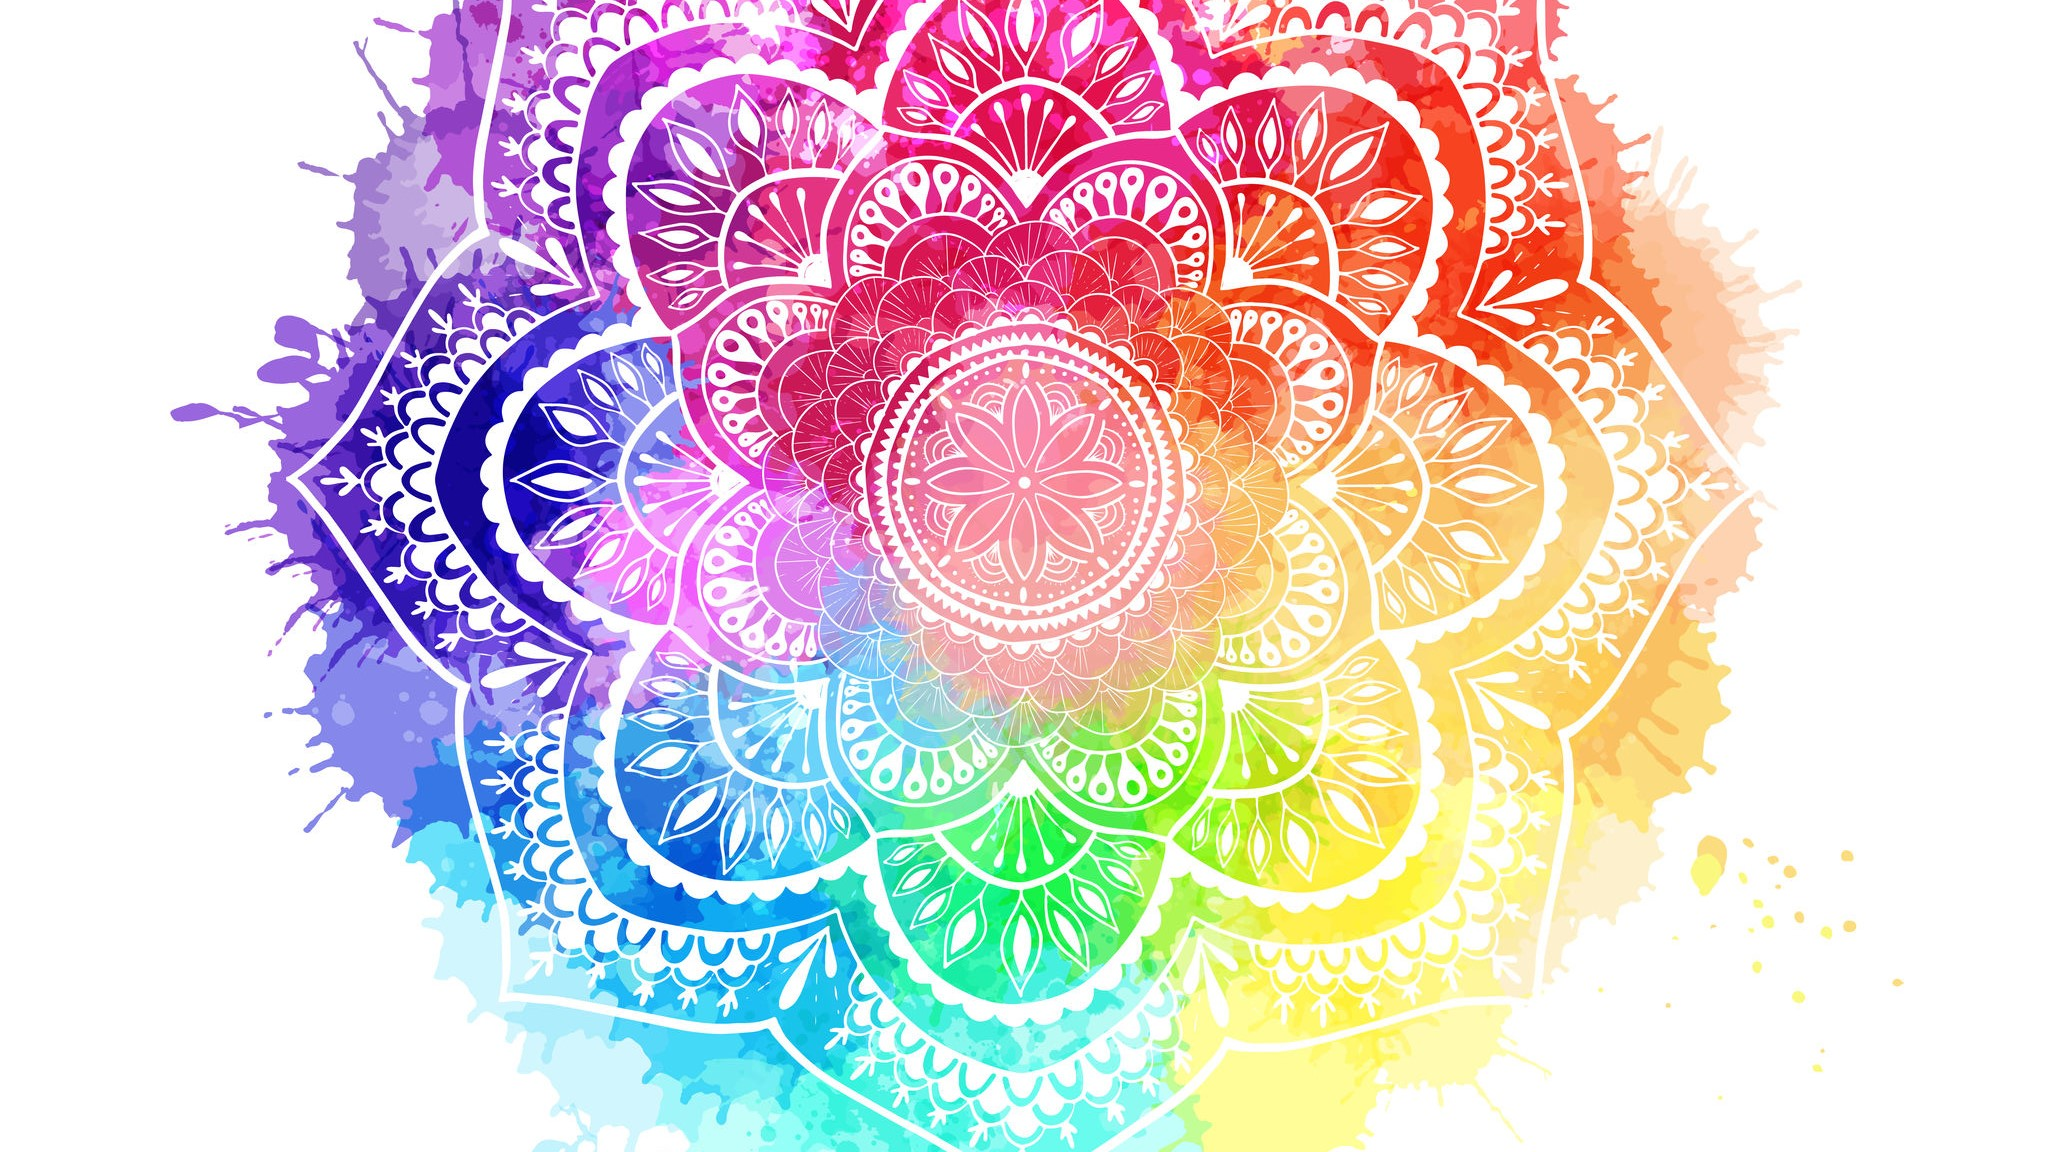 Round gradient mandala on white isolated background. Mandala over colorful watercolor. Beautiful vintage round pattern. - Vector illustration